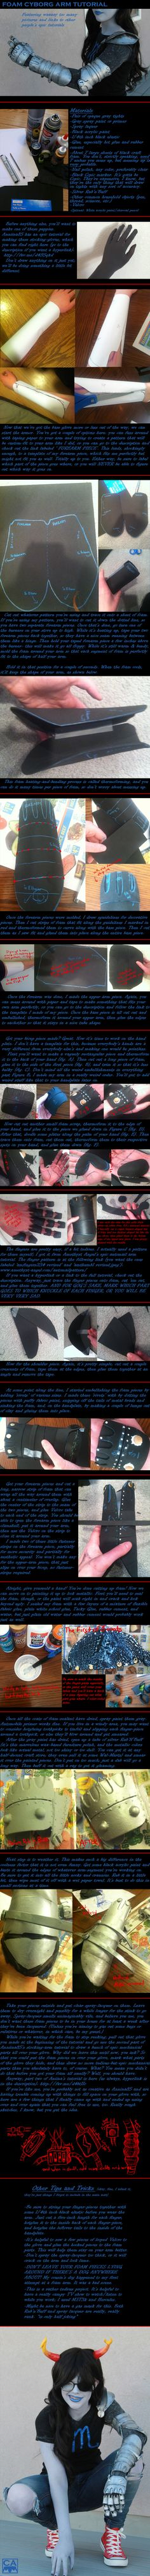 Foam Cyborg Arm Tutorial by crownless-Again.deviantart.com on @deviantART